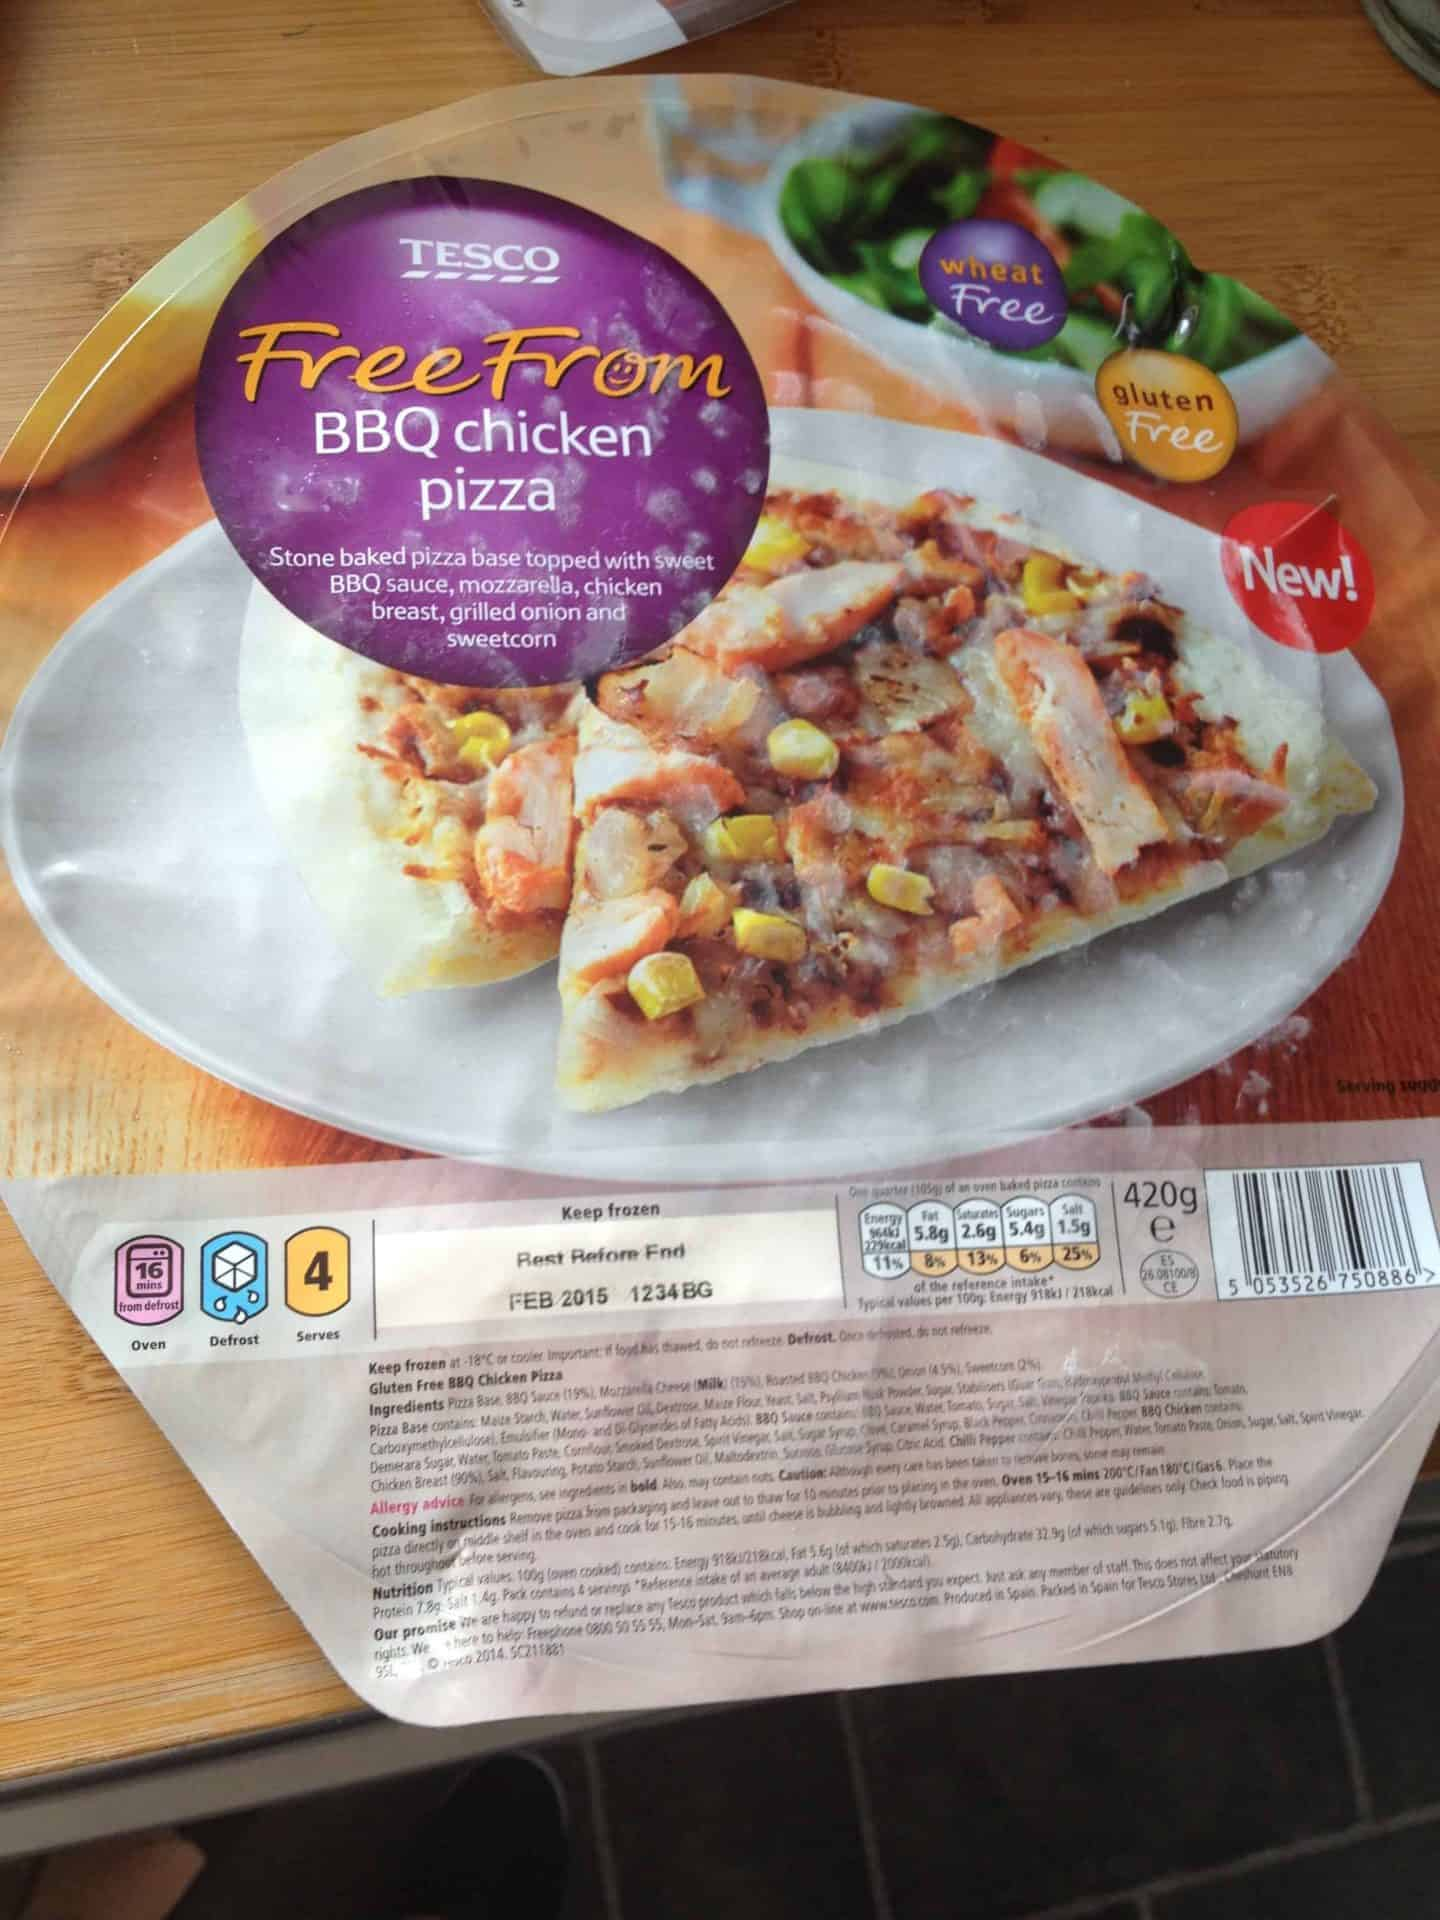 My pre-'gluten free guarantee' rant at Tesco